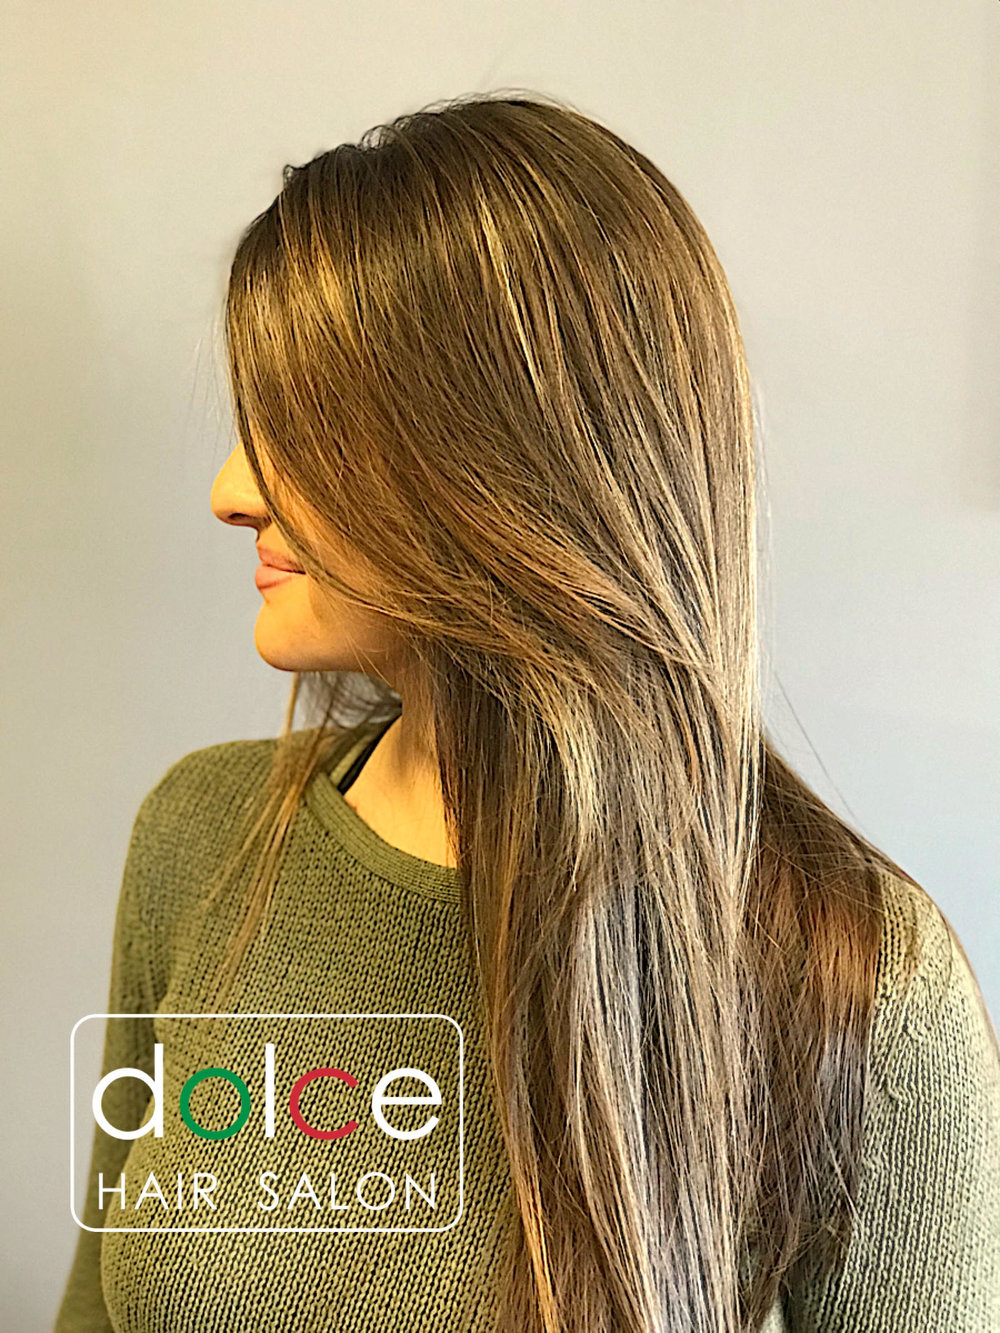 Dolce Hair Salon Pictures Pics 7.jpg